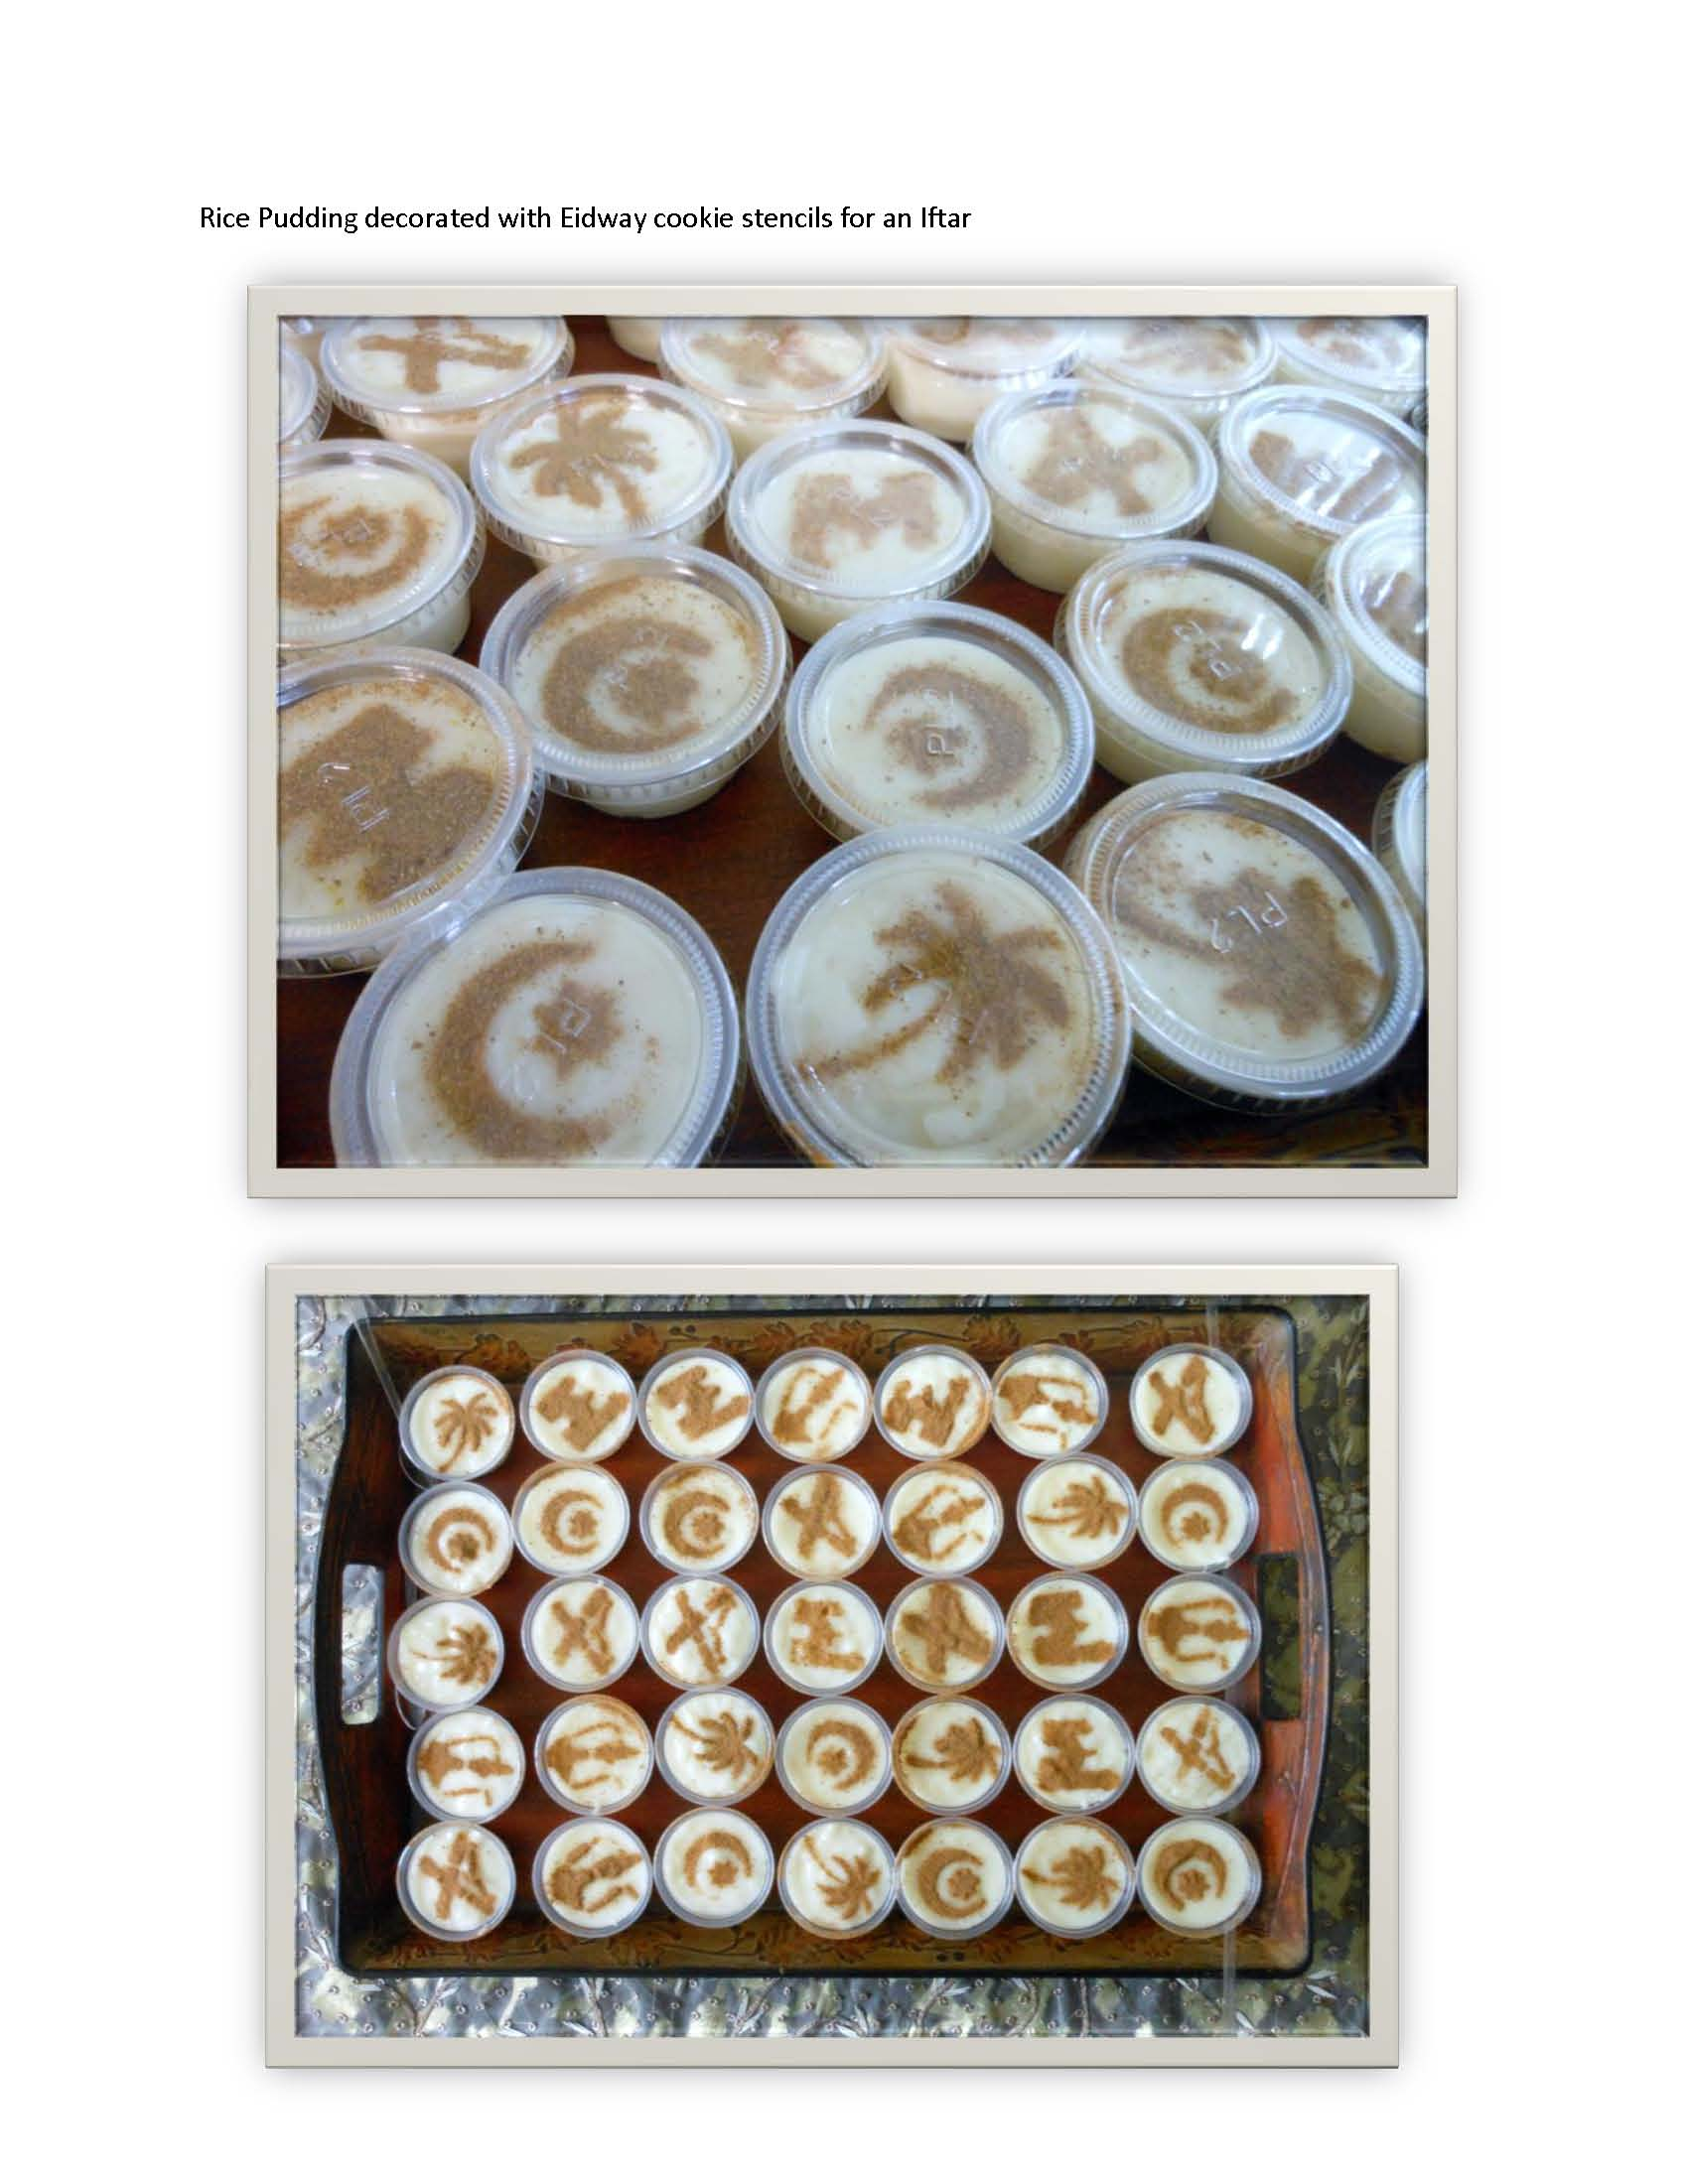 rice-pudding-decorated-with-eidway-cookie-stencils-for-an-iftar.jpg